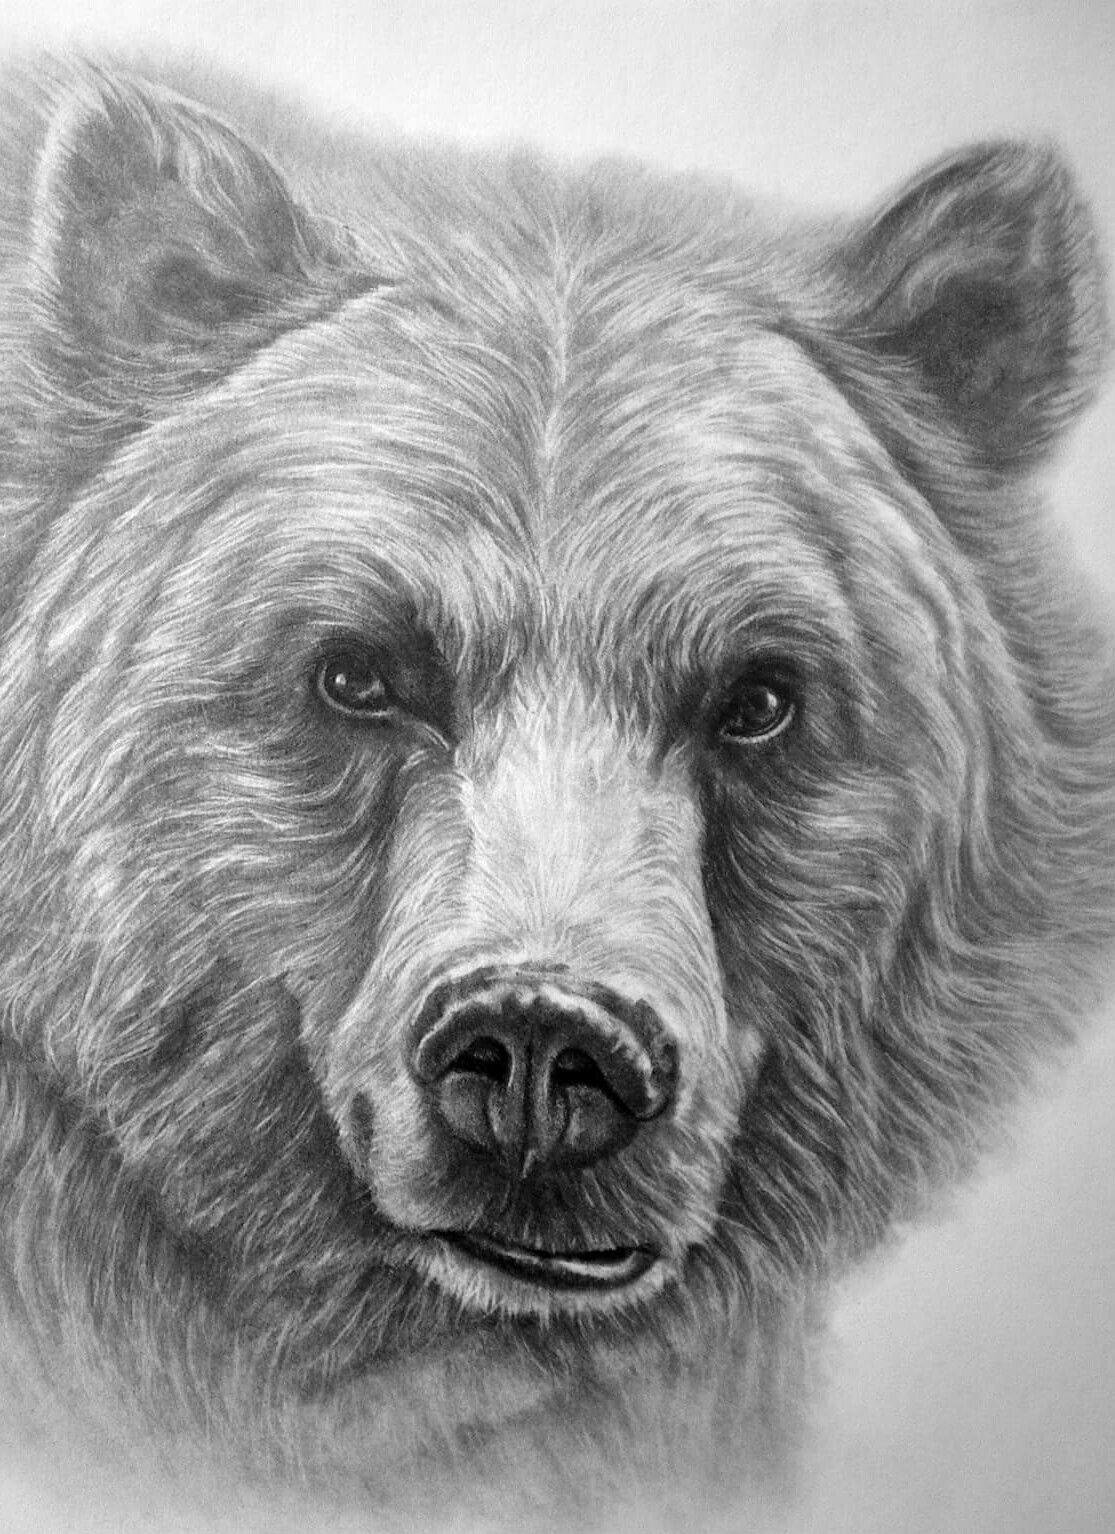 how to draw a grizzly bear face beautiful grizzly bear drawing with images bear bear face grizzly draw how a to